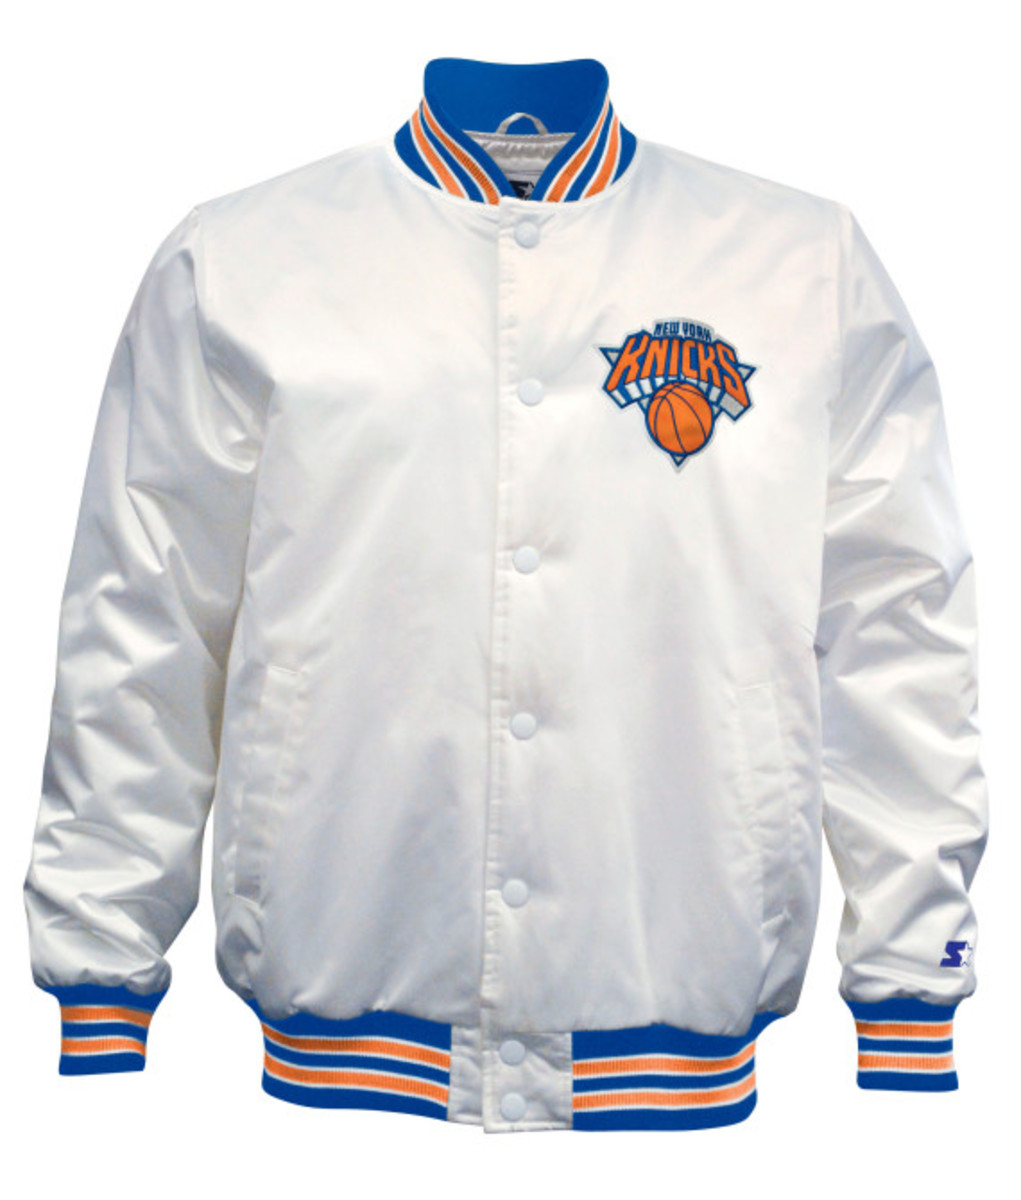 Starter – New York Knicks & Brooklyn Nets Limited Edition Satin Jacket in Christmas White - 1